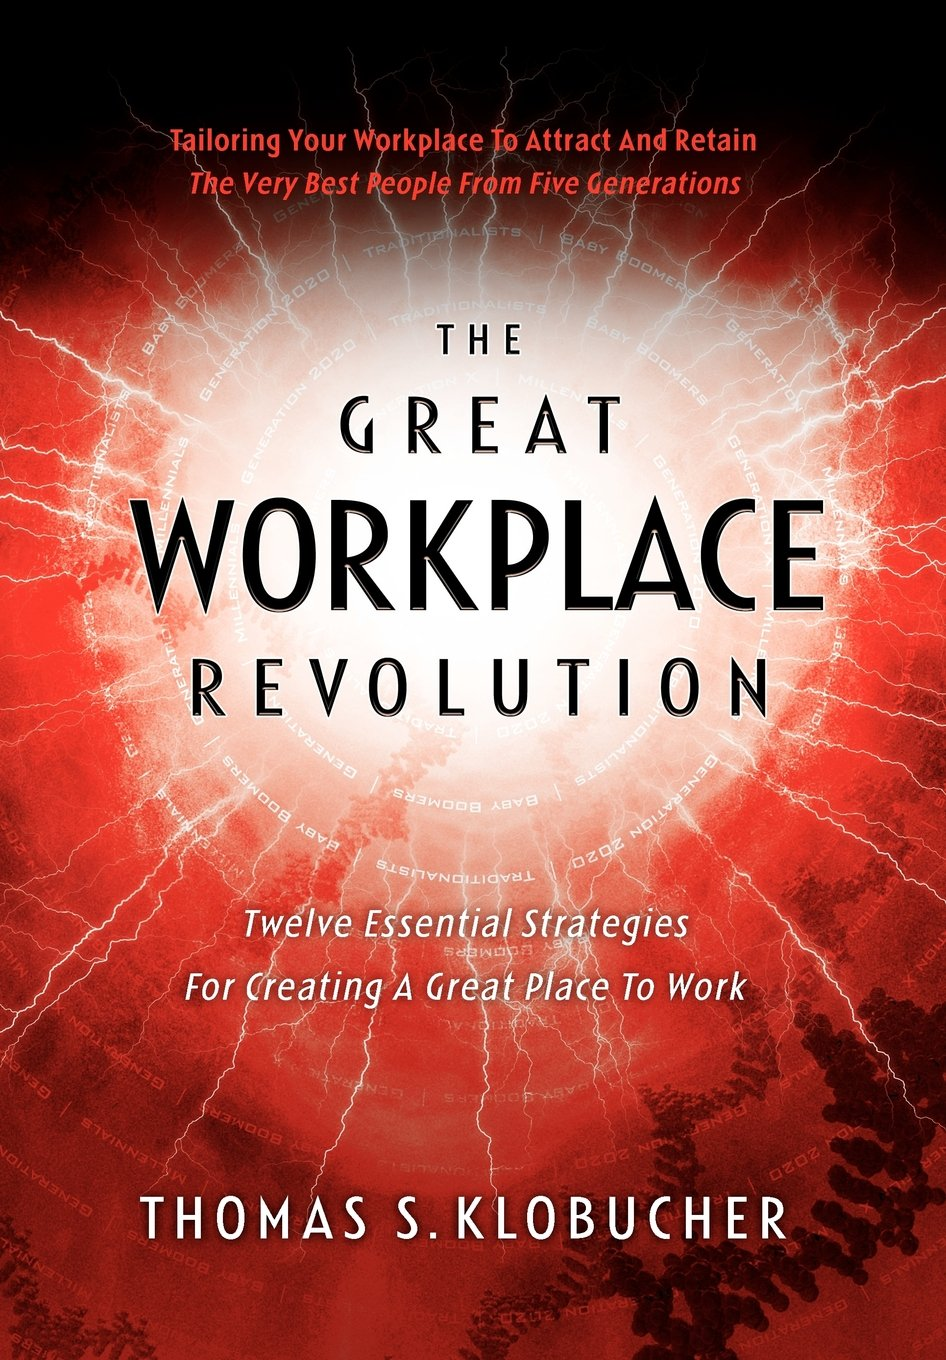 Copy of The Great Workplace Revolution